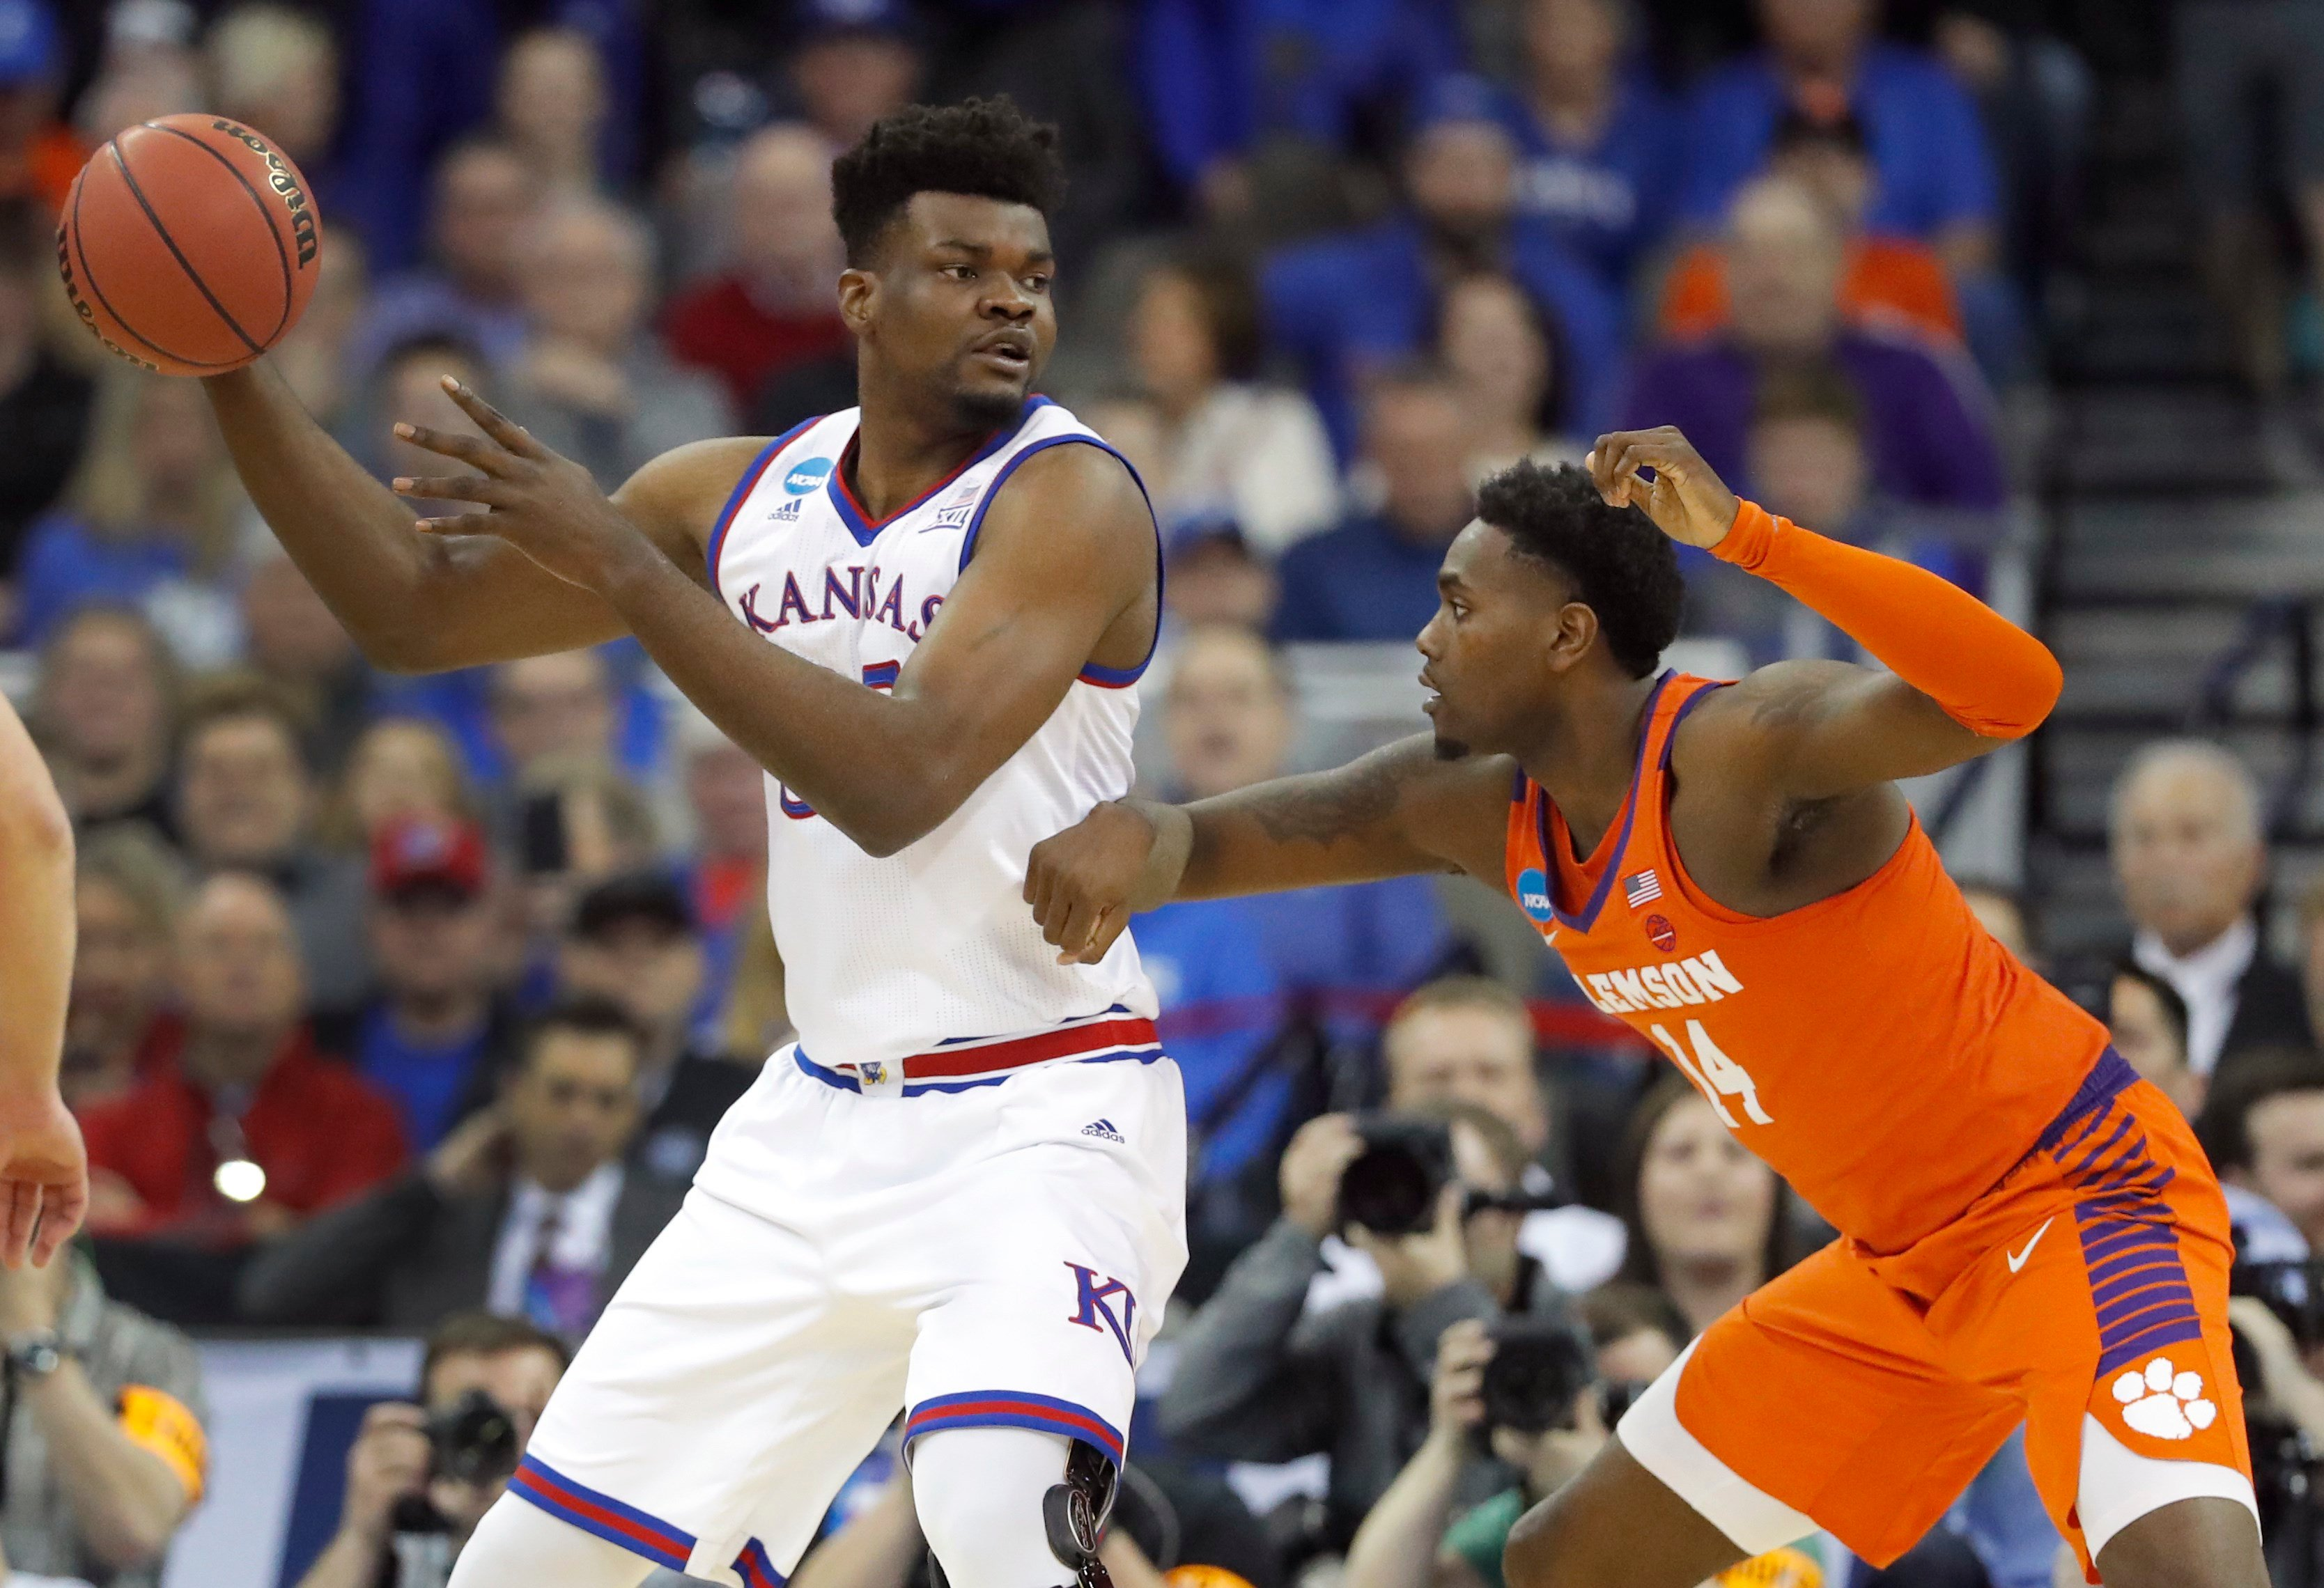 Kansas Advances To Elite 8 With 80-76 Win Over Clemson